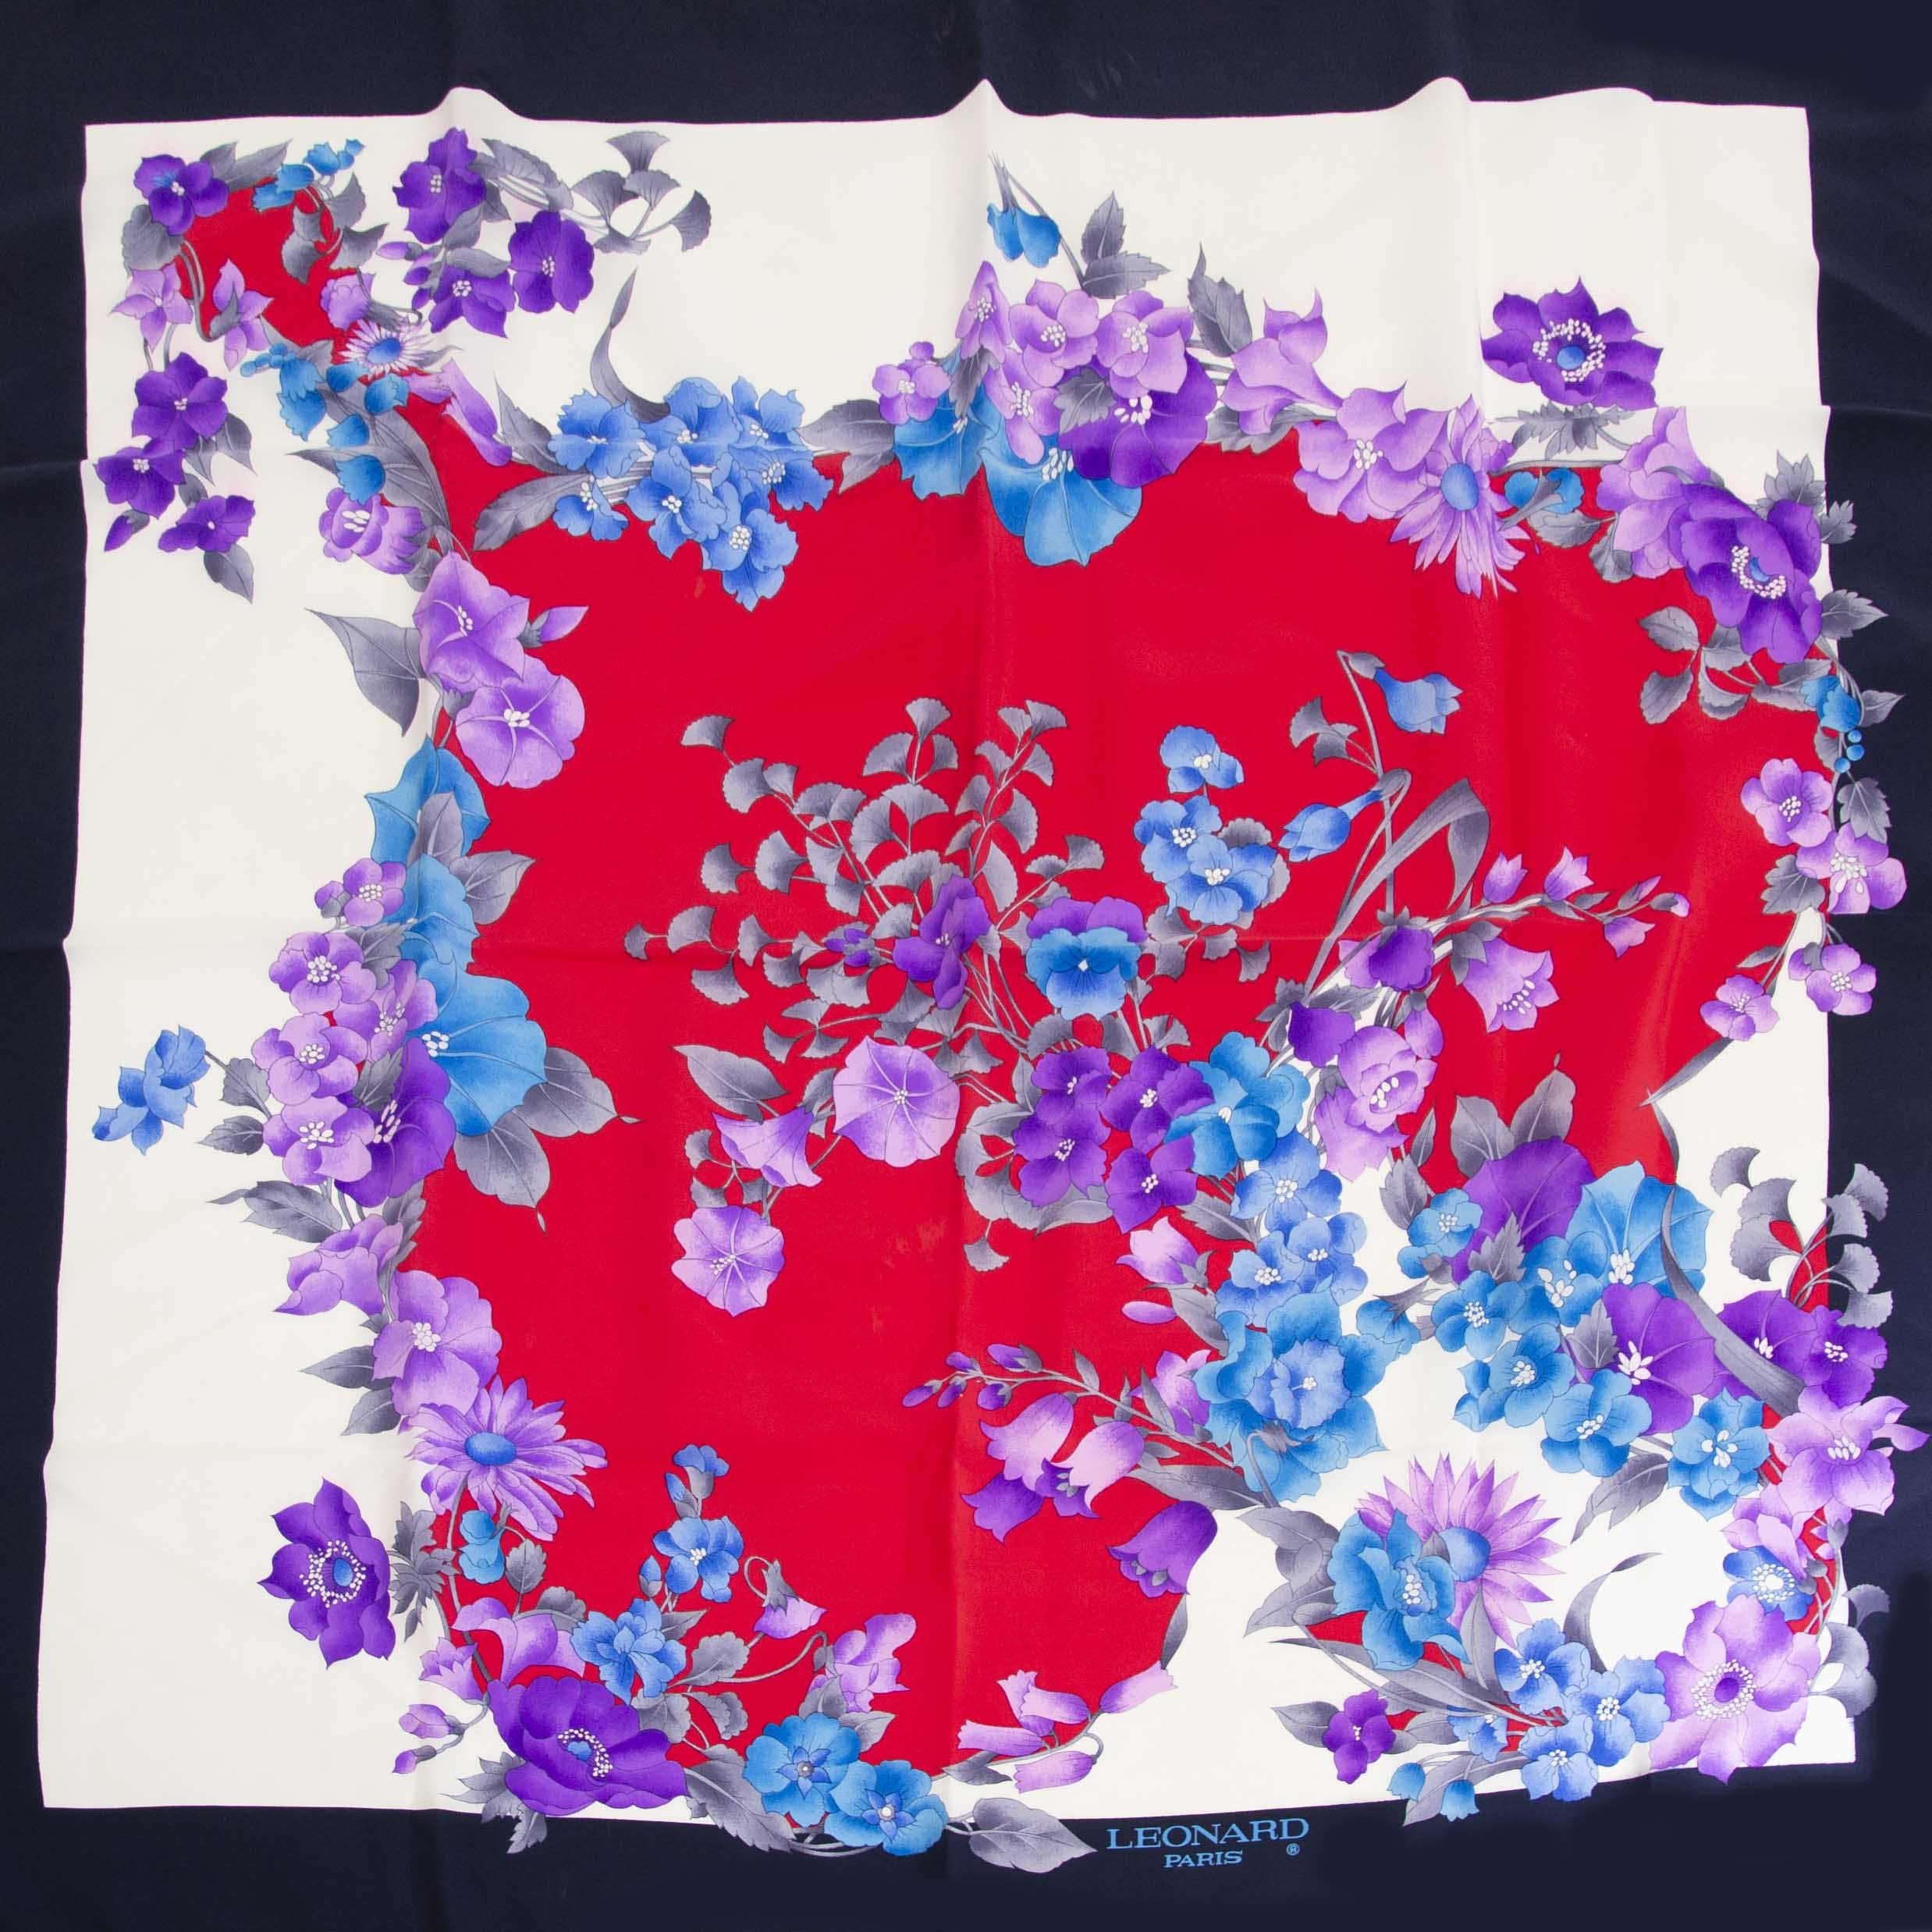 Leonard Paris Carré Flower Scarf